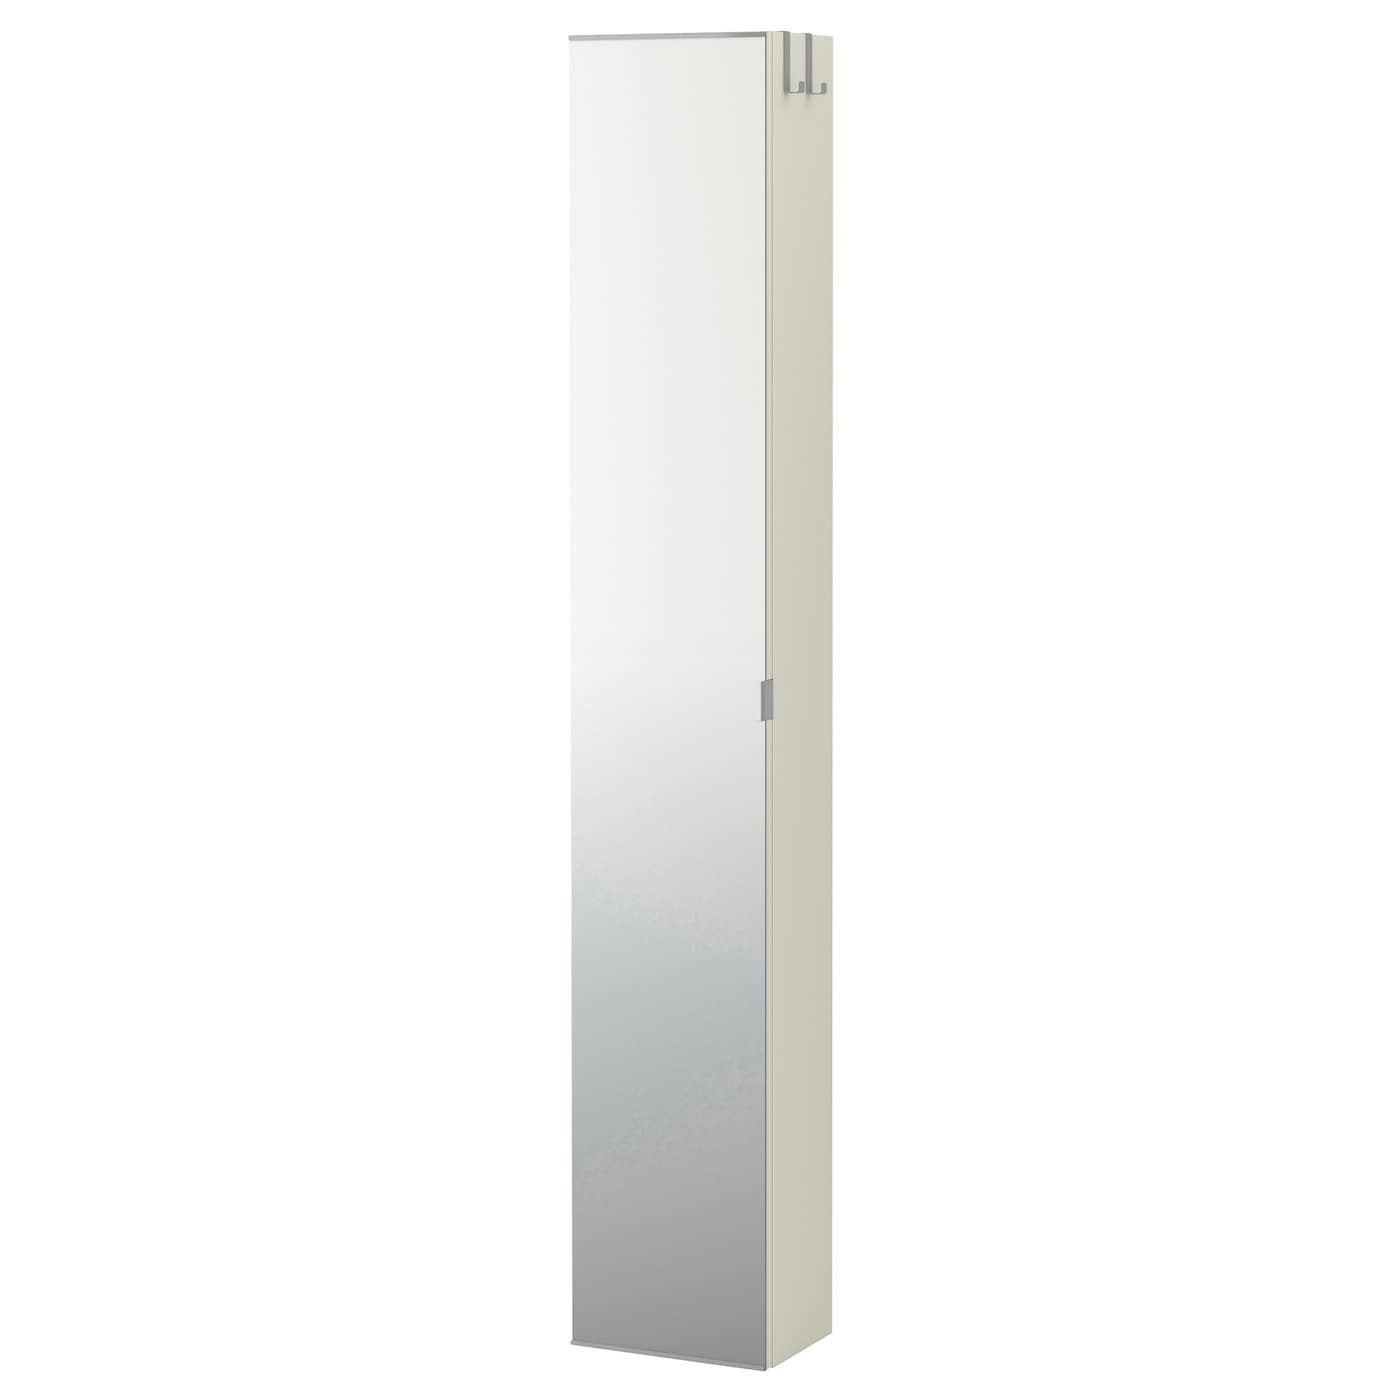 Lill ngen high cabinet with mirror door white 30x21x179 cm for Slim mirrored bathroom cabinet